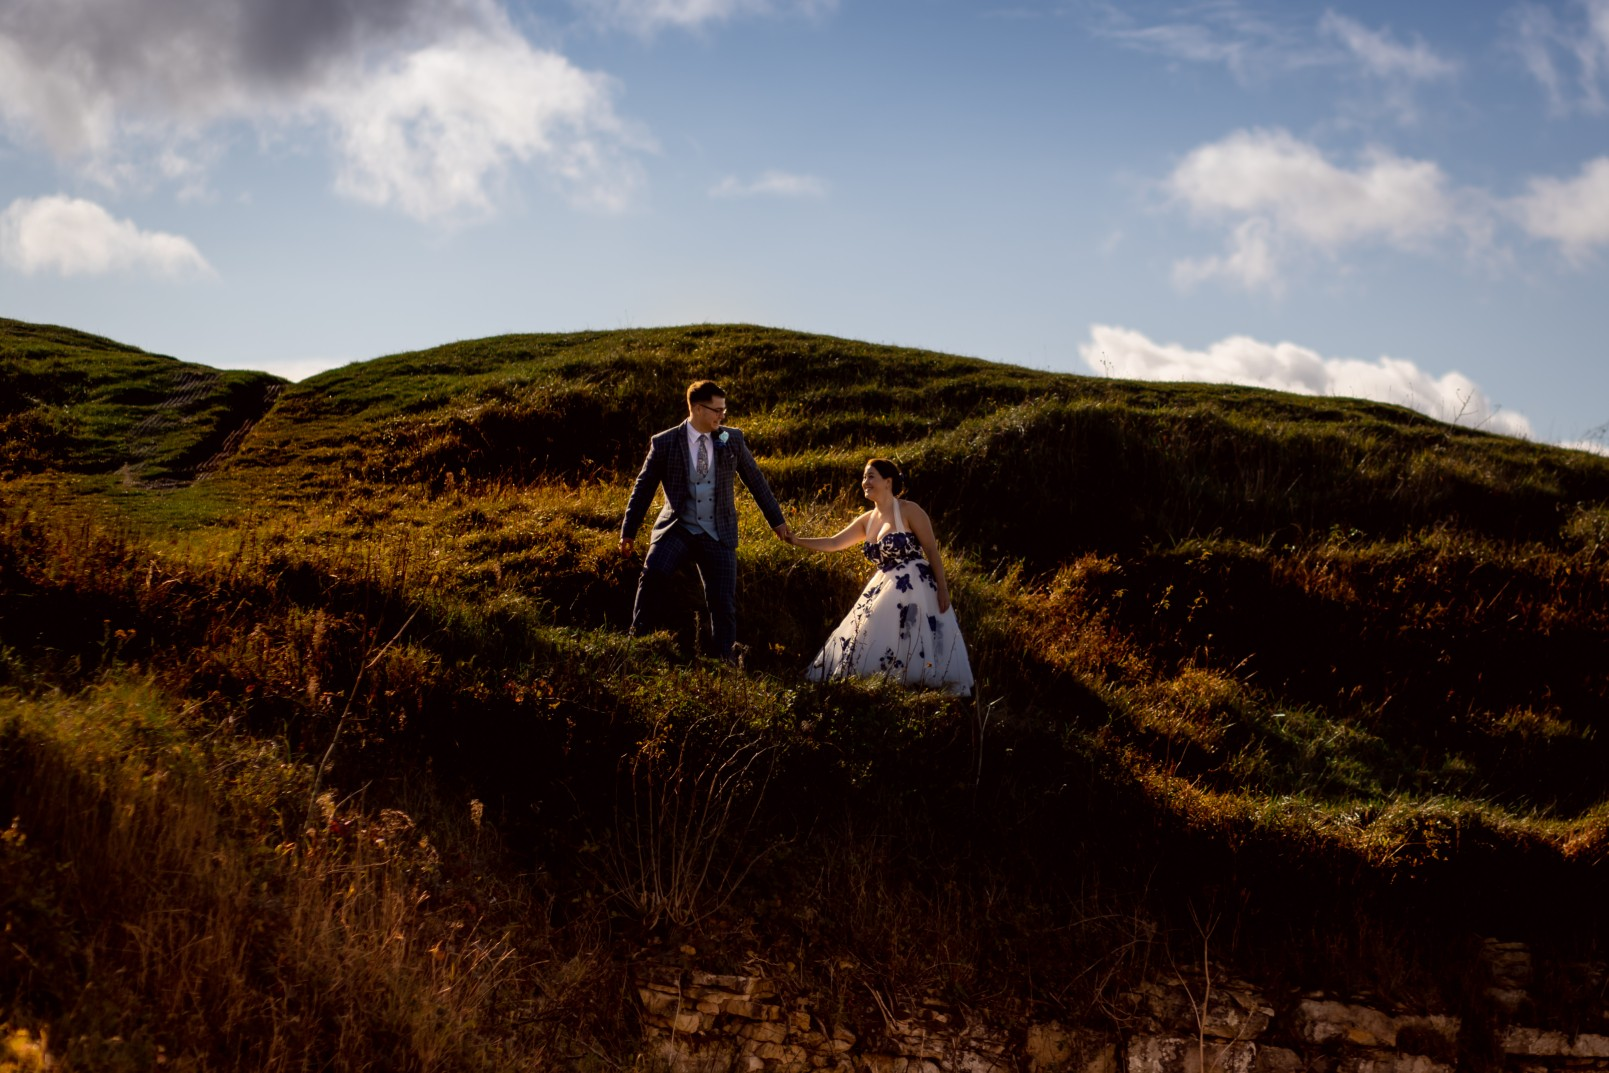 creative wedding photography - creative covid wedding in the cotswolds